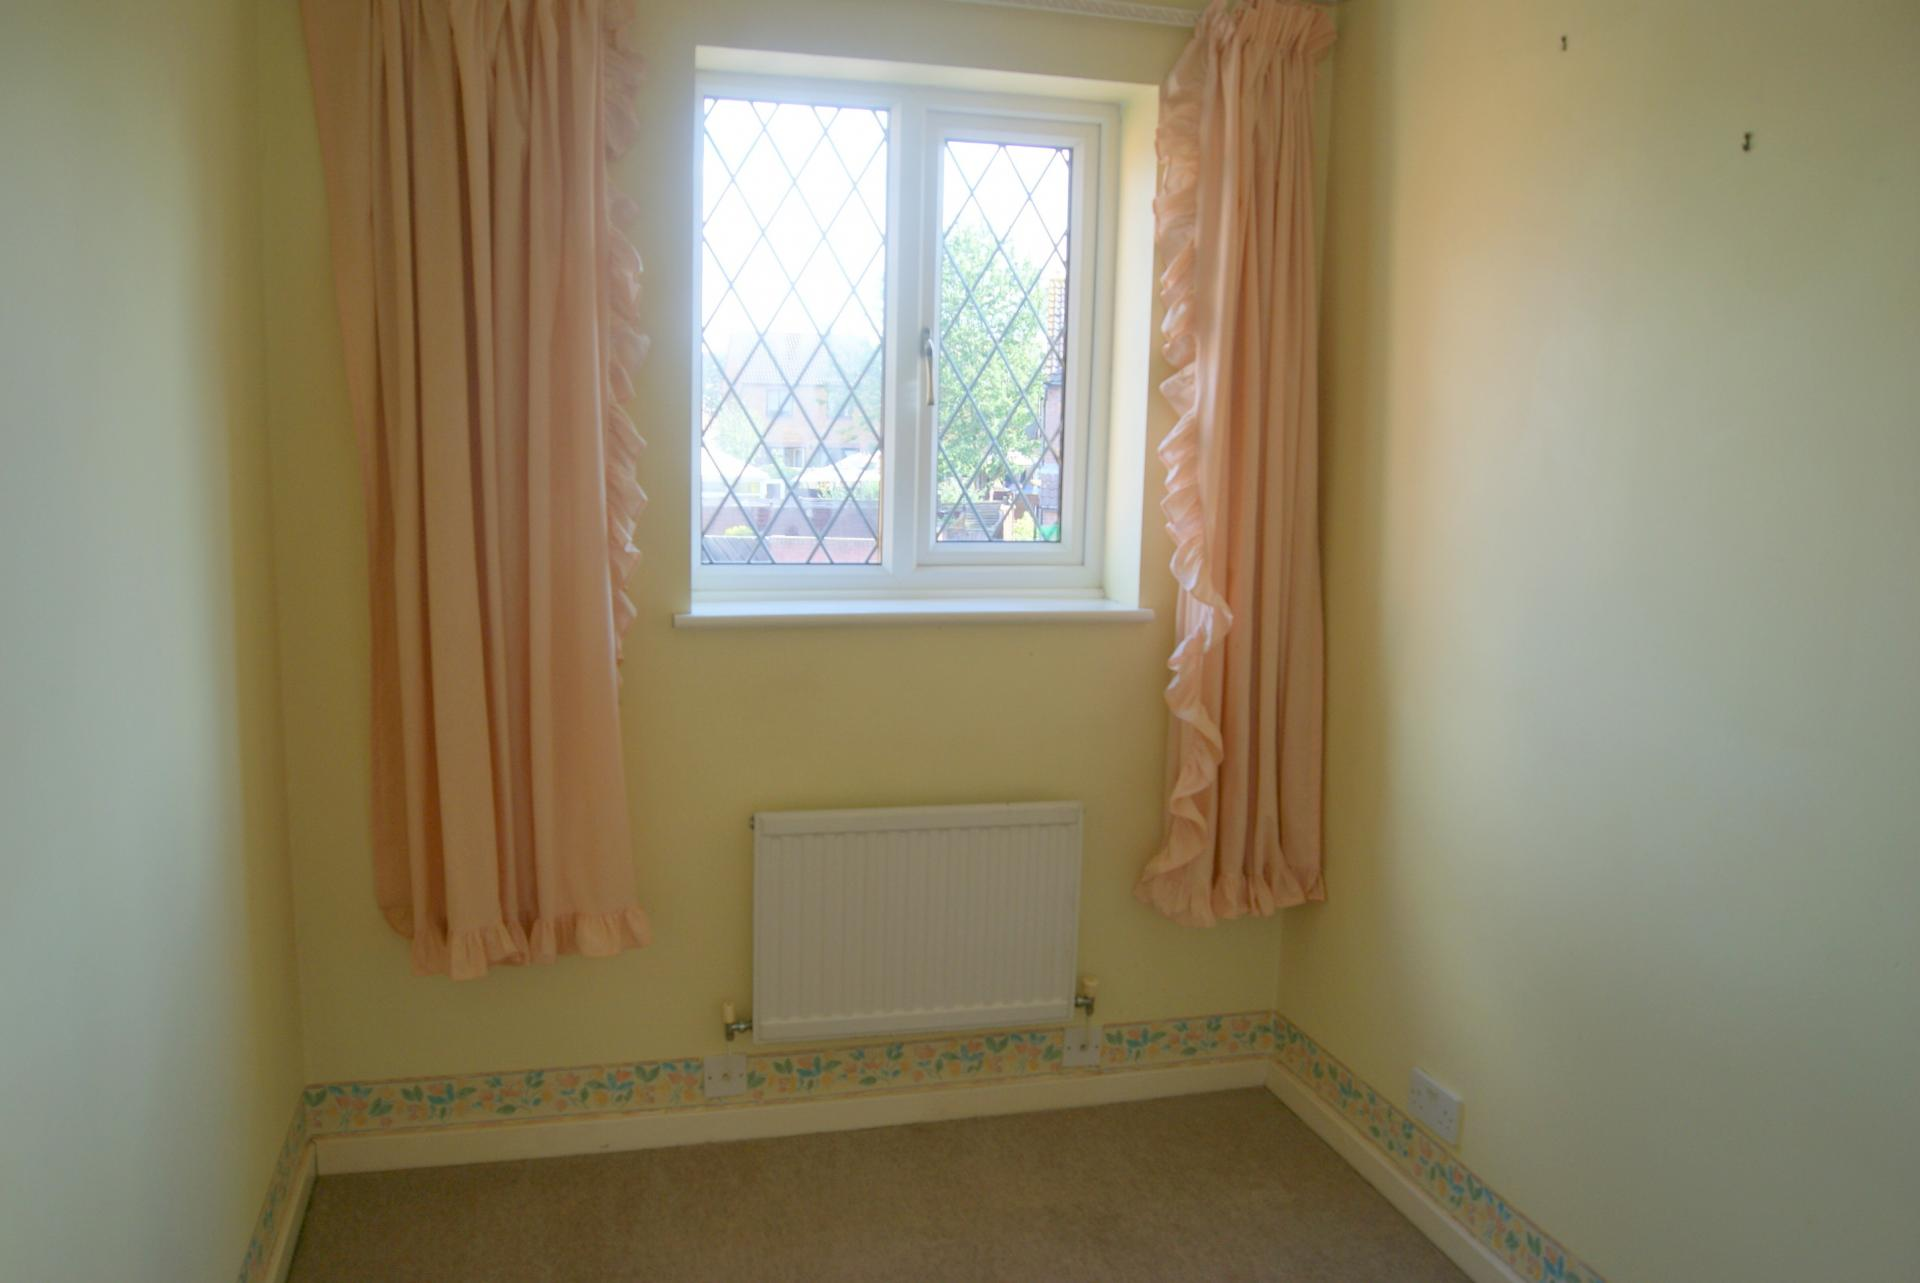 3 Bedroom House For Sale In Evesham